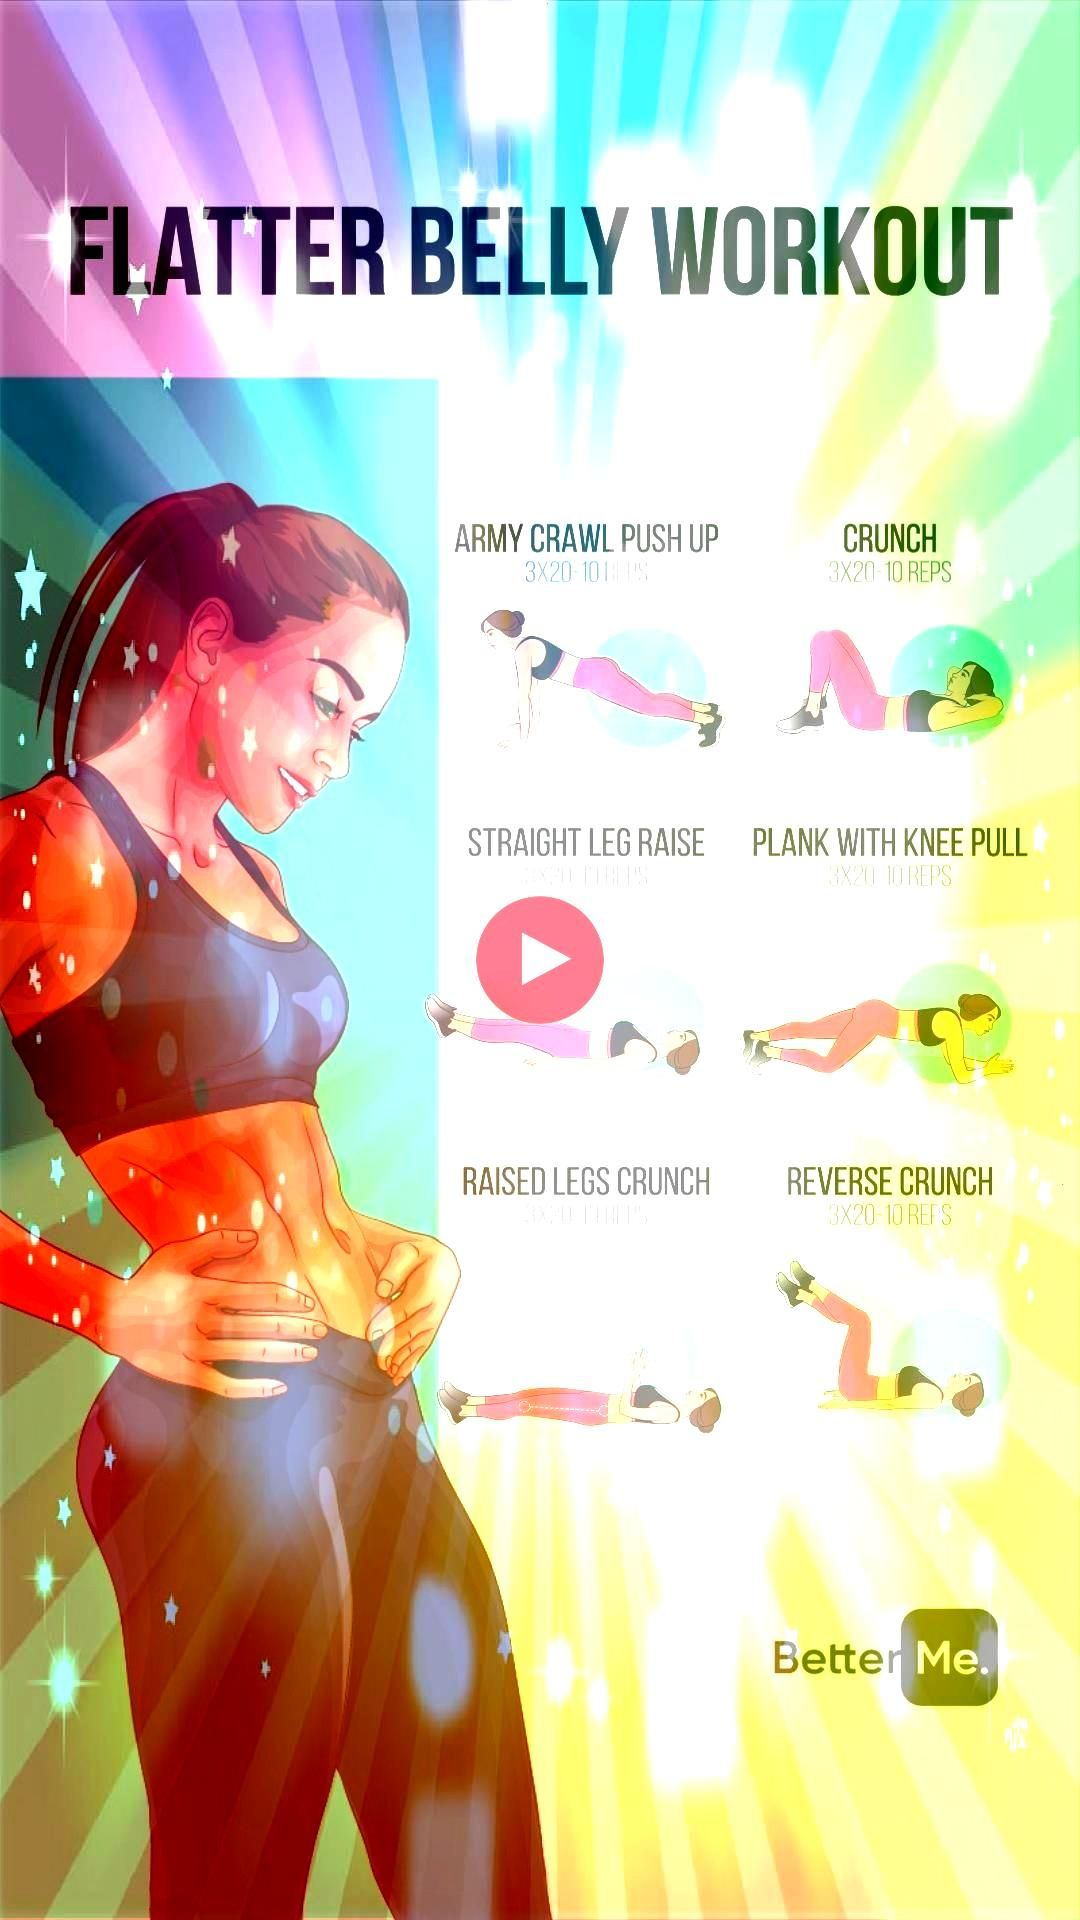 workout Flatter Belly WorkoutFlatter Belly Workout At Home Ab workout credit IG dannibelle Experience the Worlds Largest Library of Audiobooks Exclusive Fitness  Weight l...